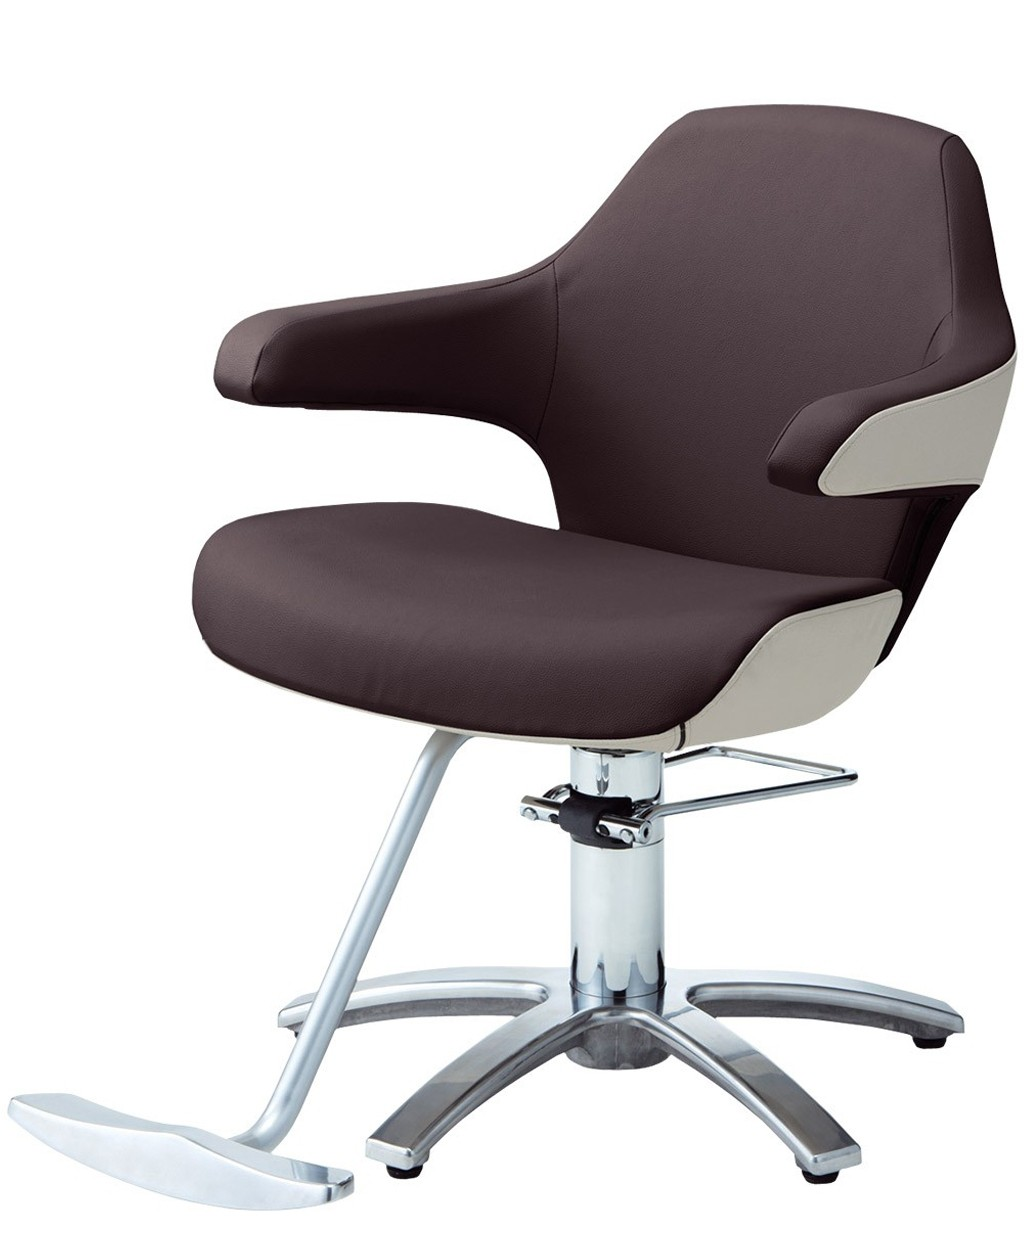 ST-N40 Cove Styling Chair